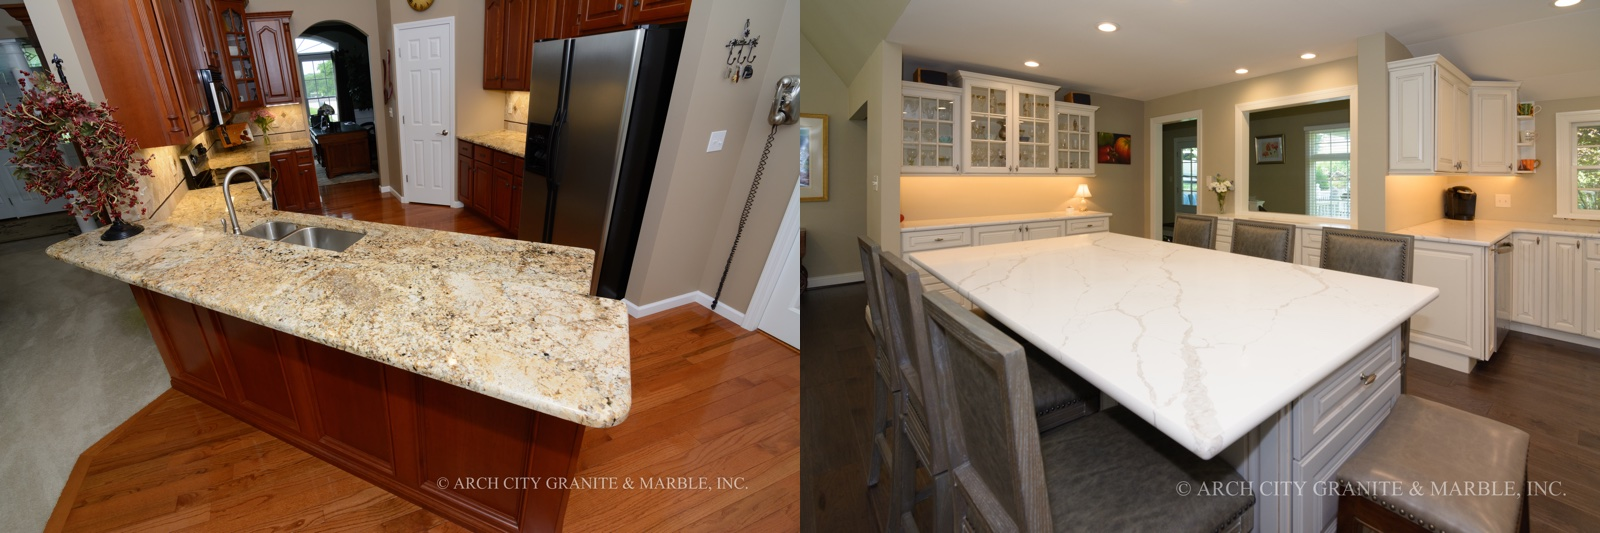 Quartz Countertops | Granite vs Quartz Price